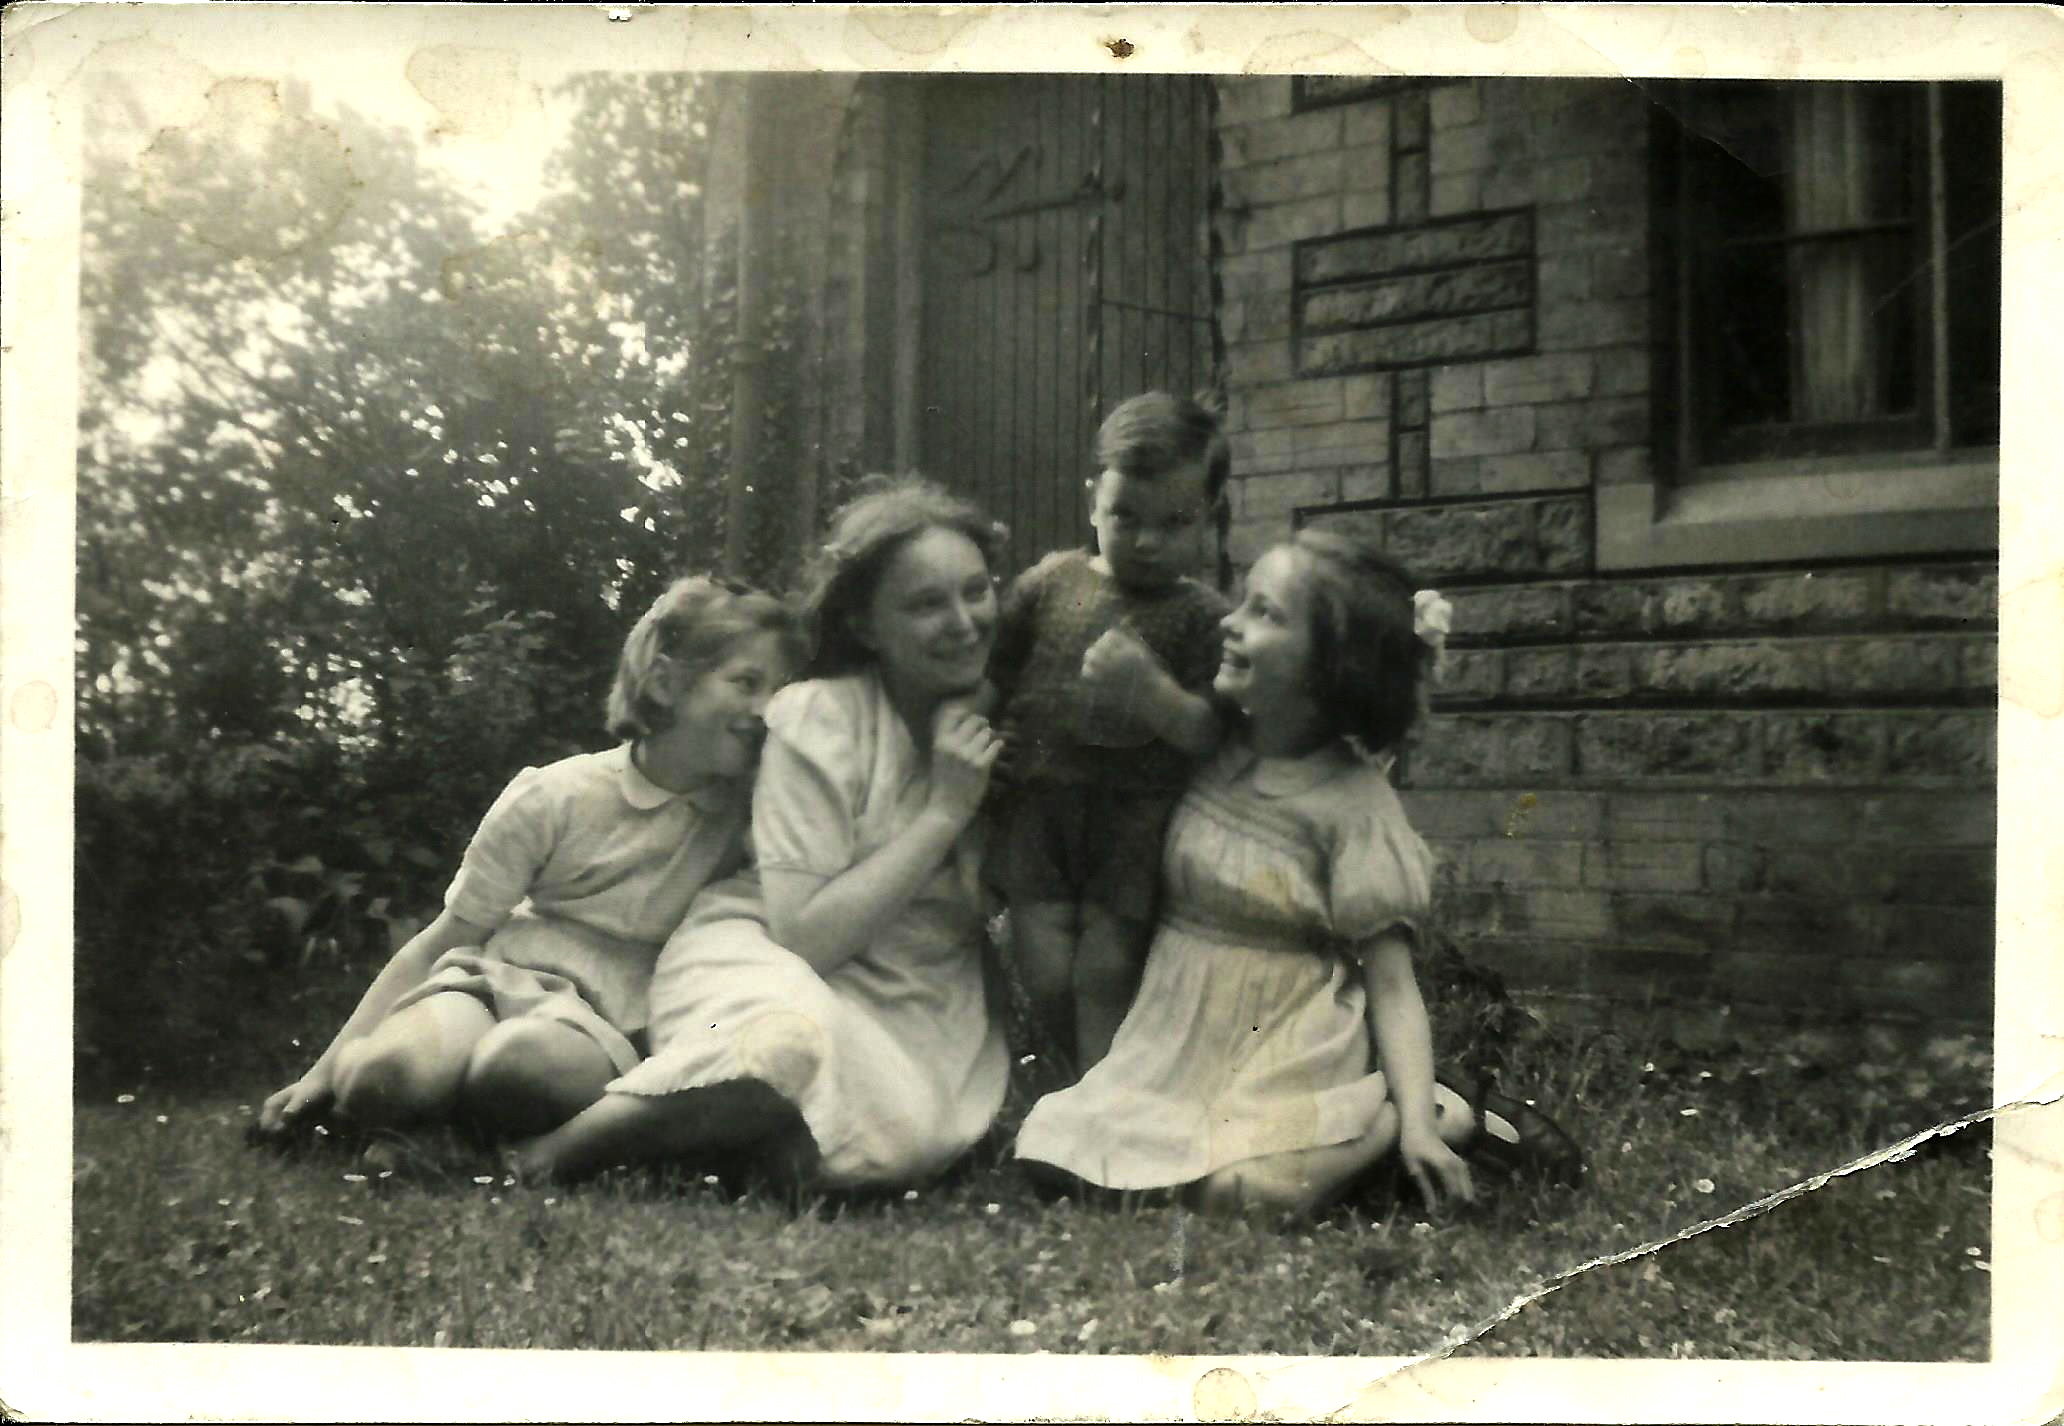 Sisters dorothy frognal